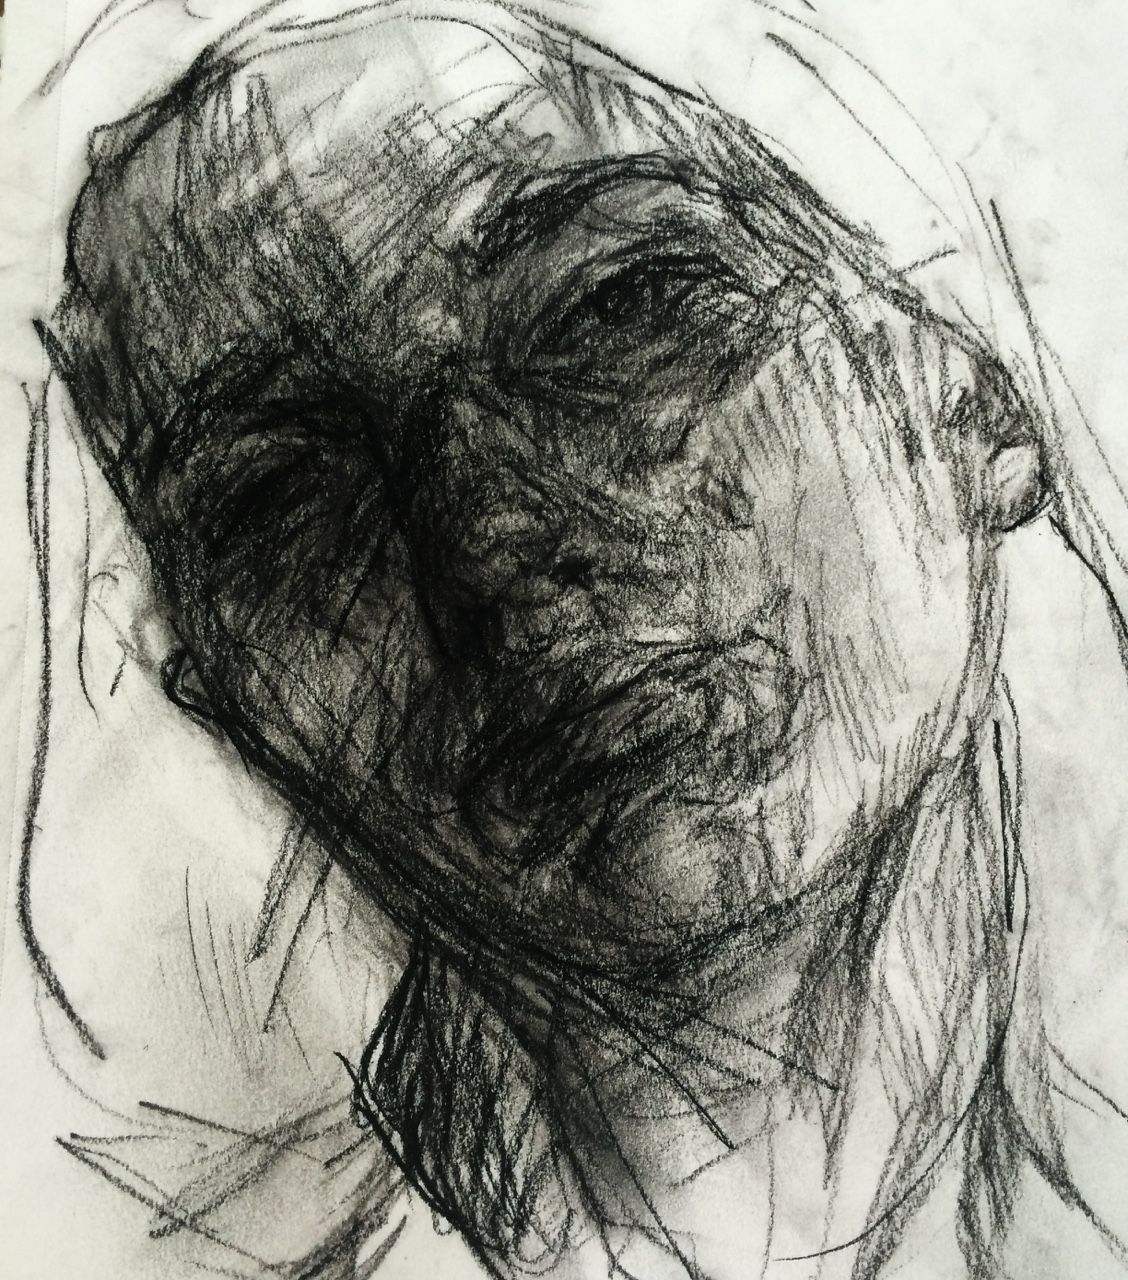 Elly Smallwood - Charcoal self portrait